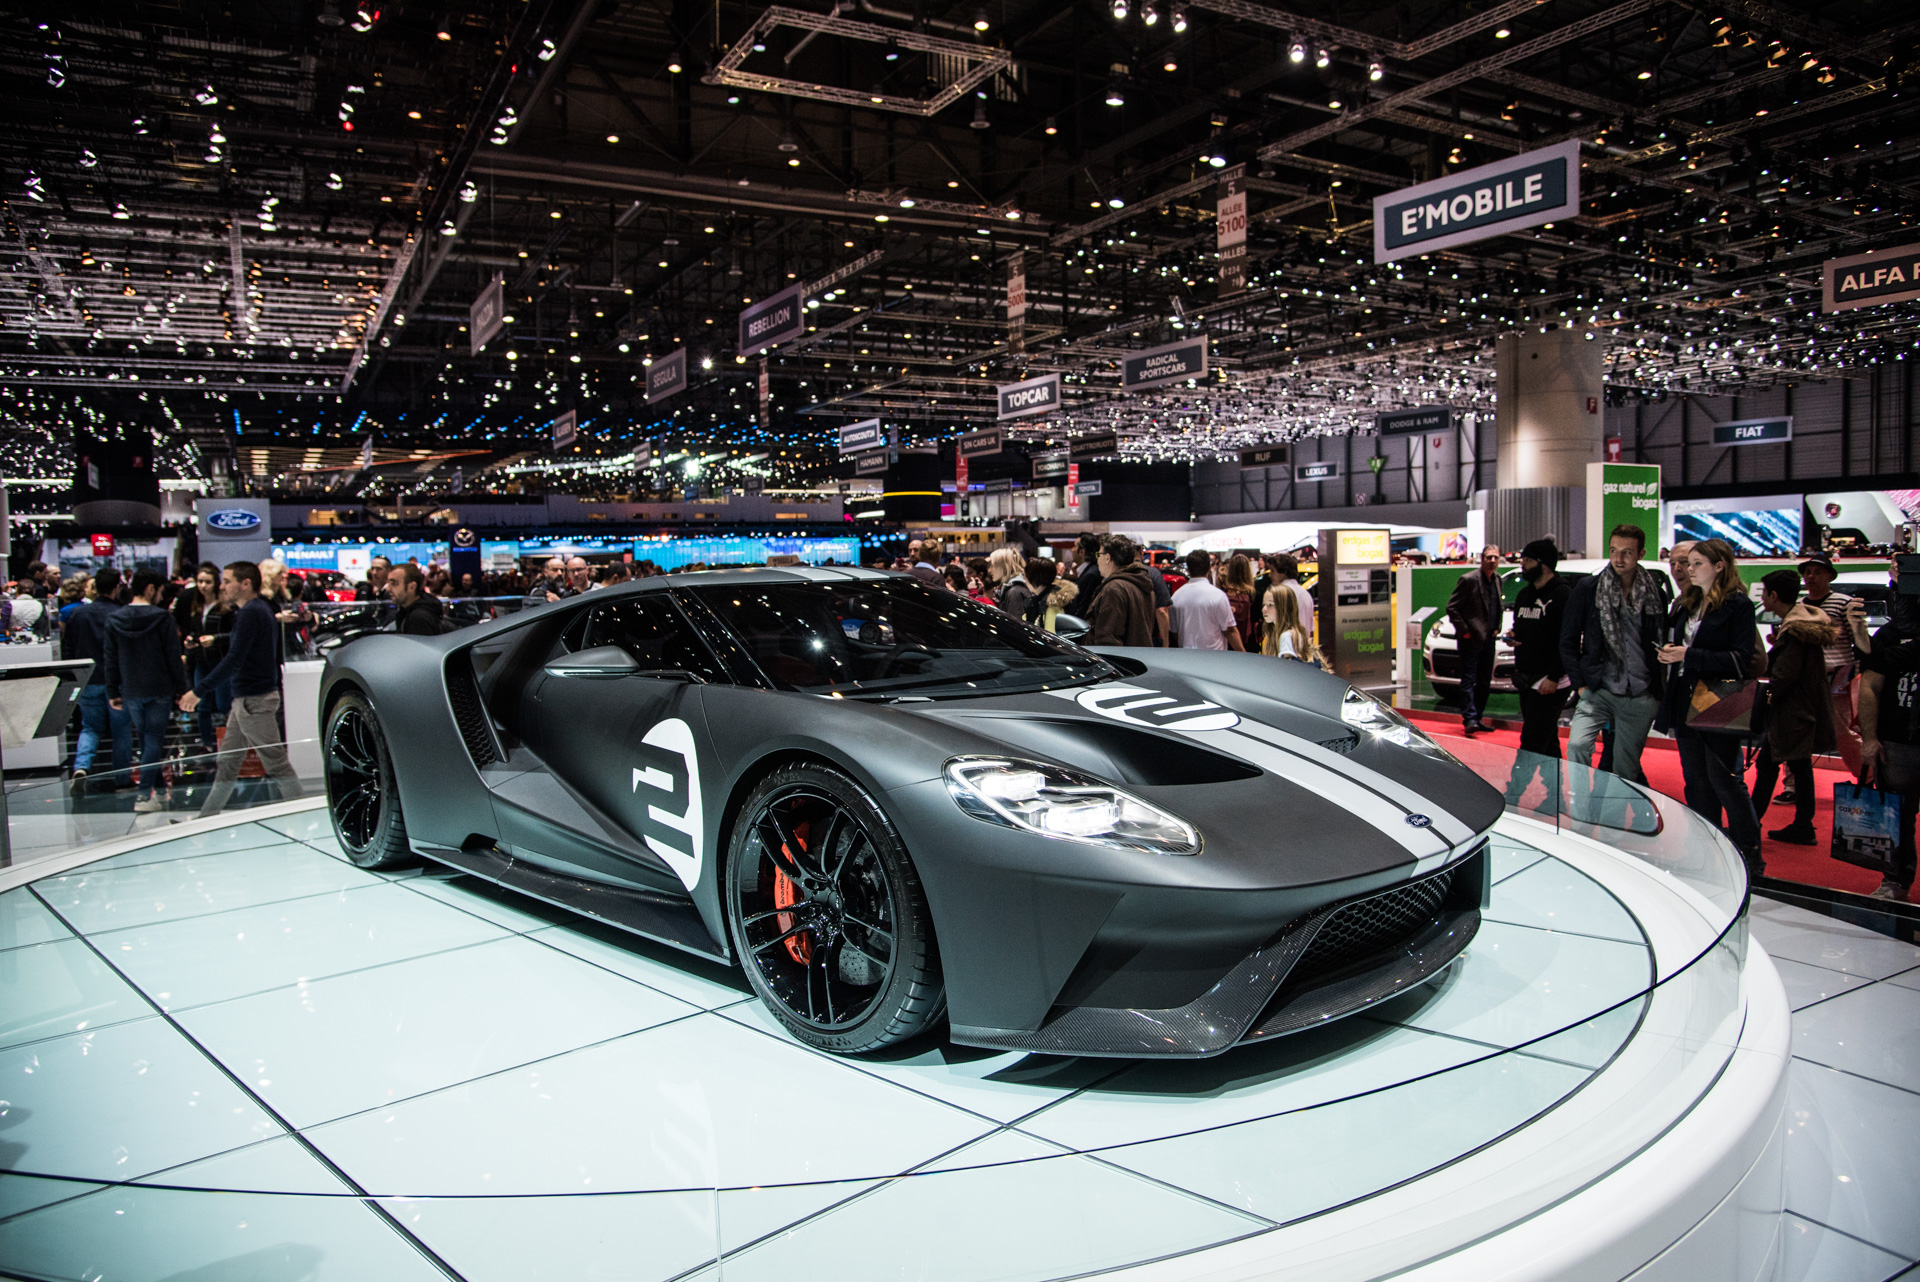 geneva-international-motor-show-igor-sinitsin-16